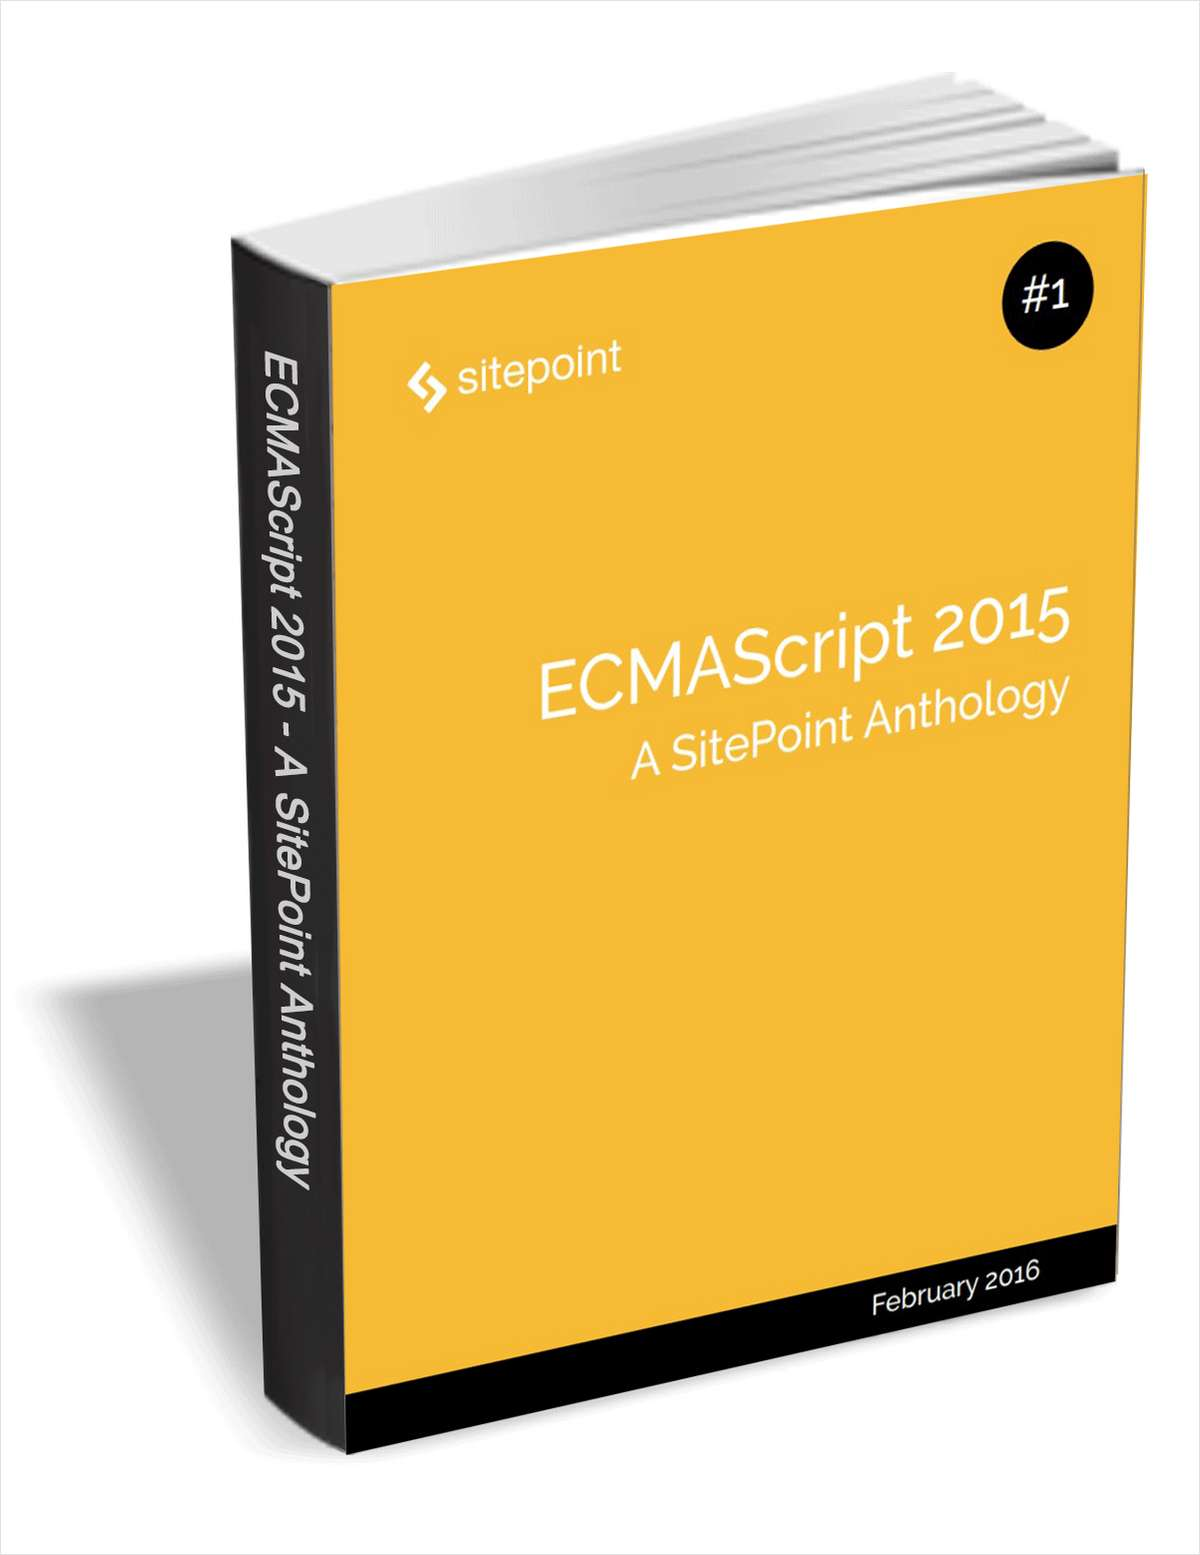 ECMAScript 2015 - A SitePoint Anthology ($29 Value FREE For a Limited Time)